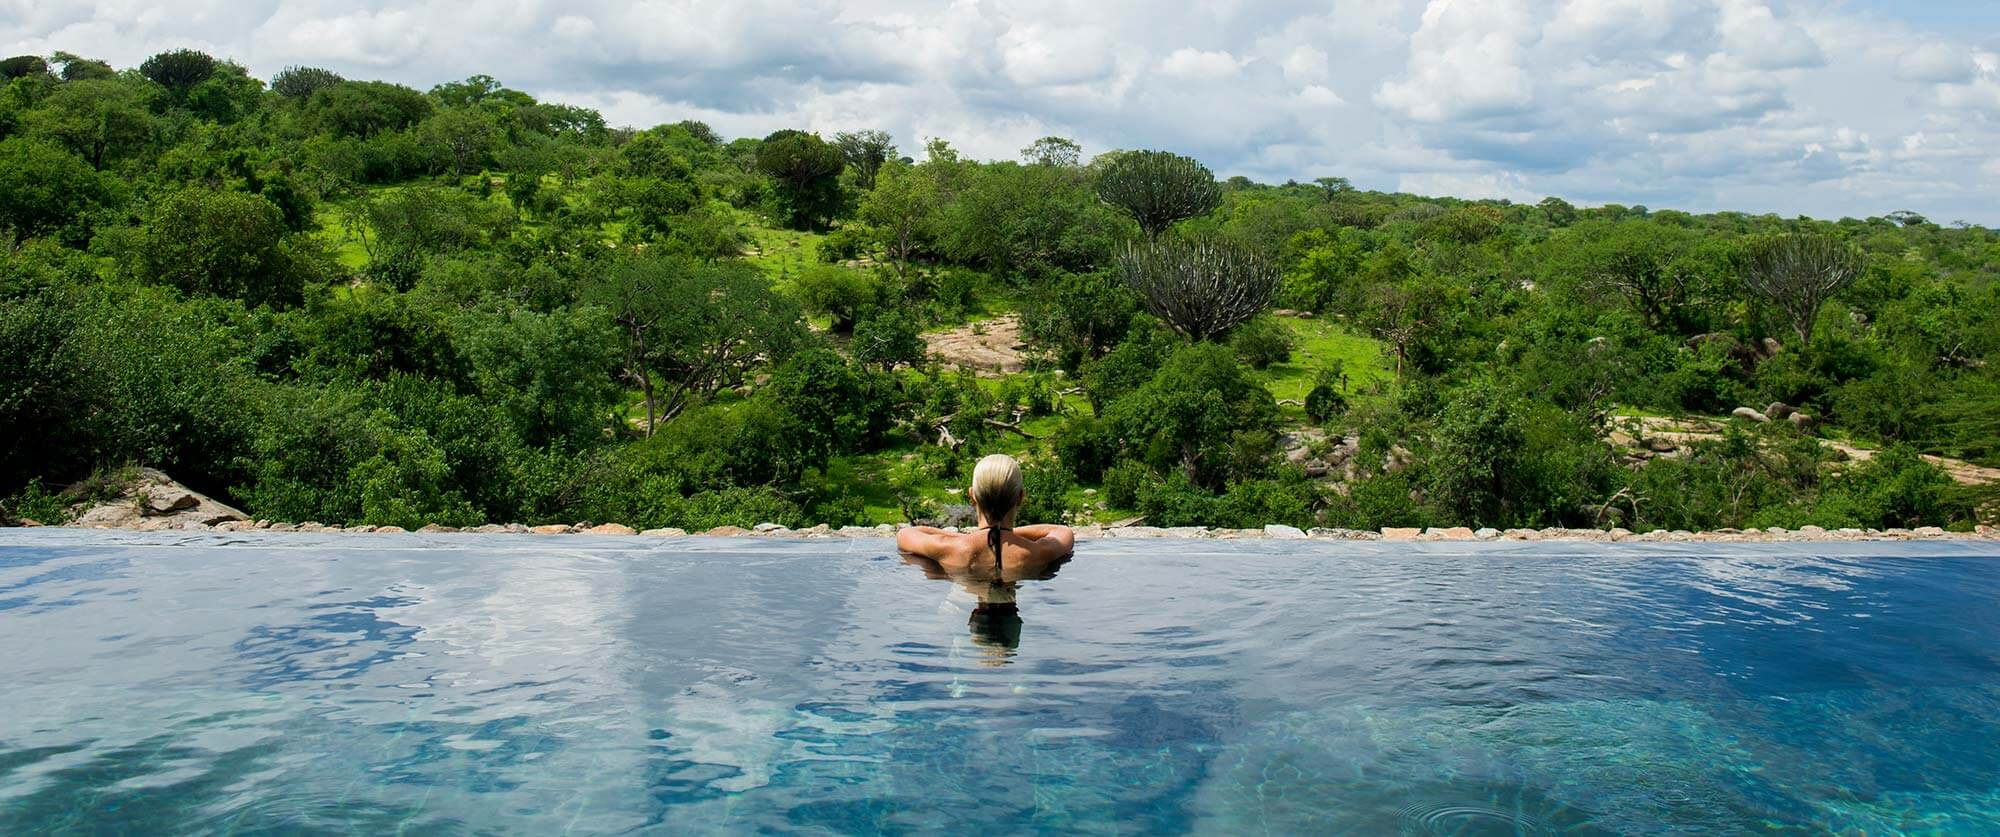 Pool at Mwiba Lodge - Tanzania Safari Tours: Ultimate Northern Circuit Package